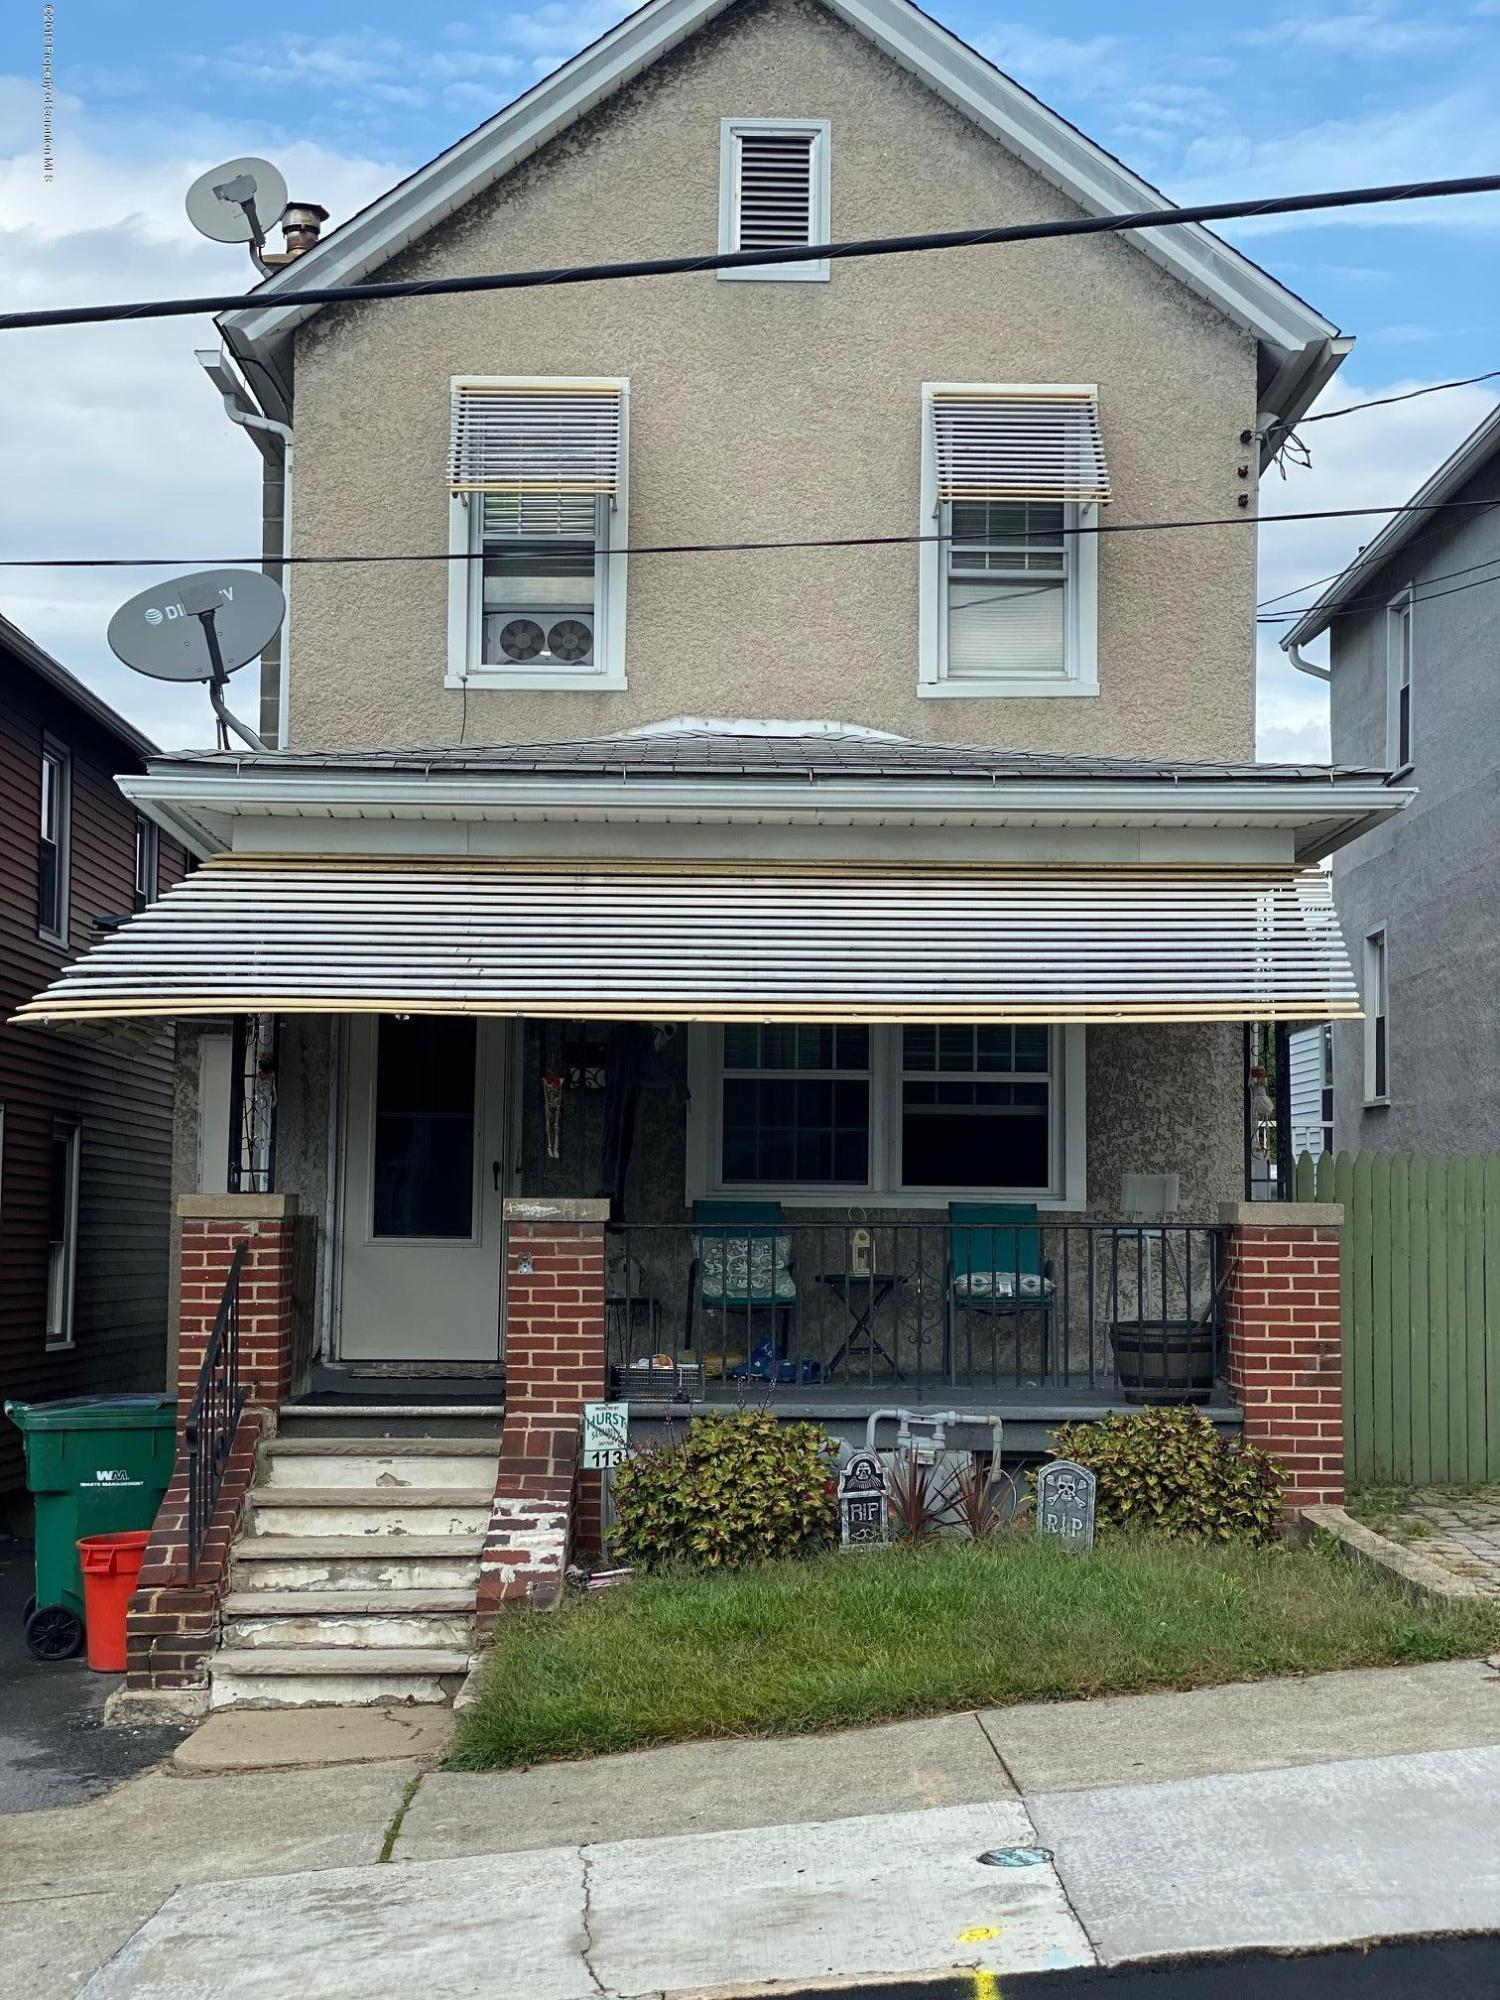 113 Grove St, Dunmore, Pennsylvania 18510, 2 Bedrooms Bedrooms, 6 Rooms Rooms,2 BathroomsBathrooms,Single Family,For Sale,Grove,19-4939